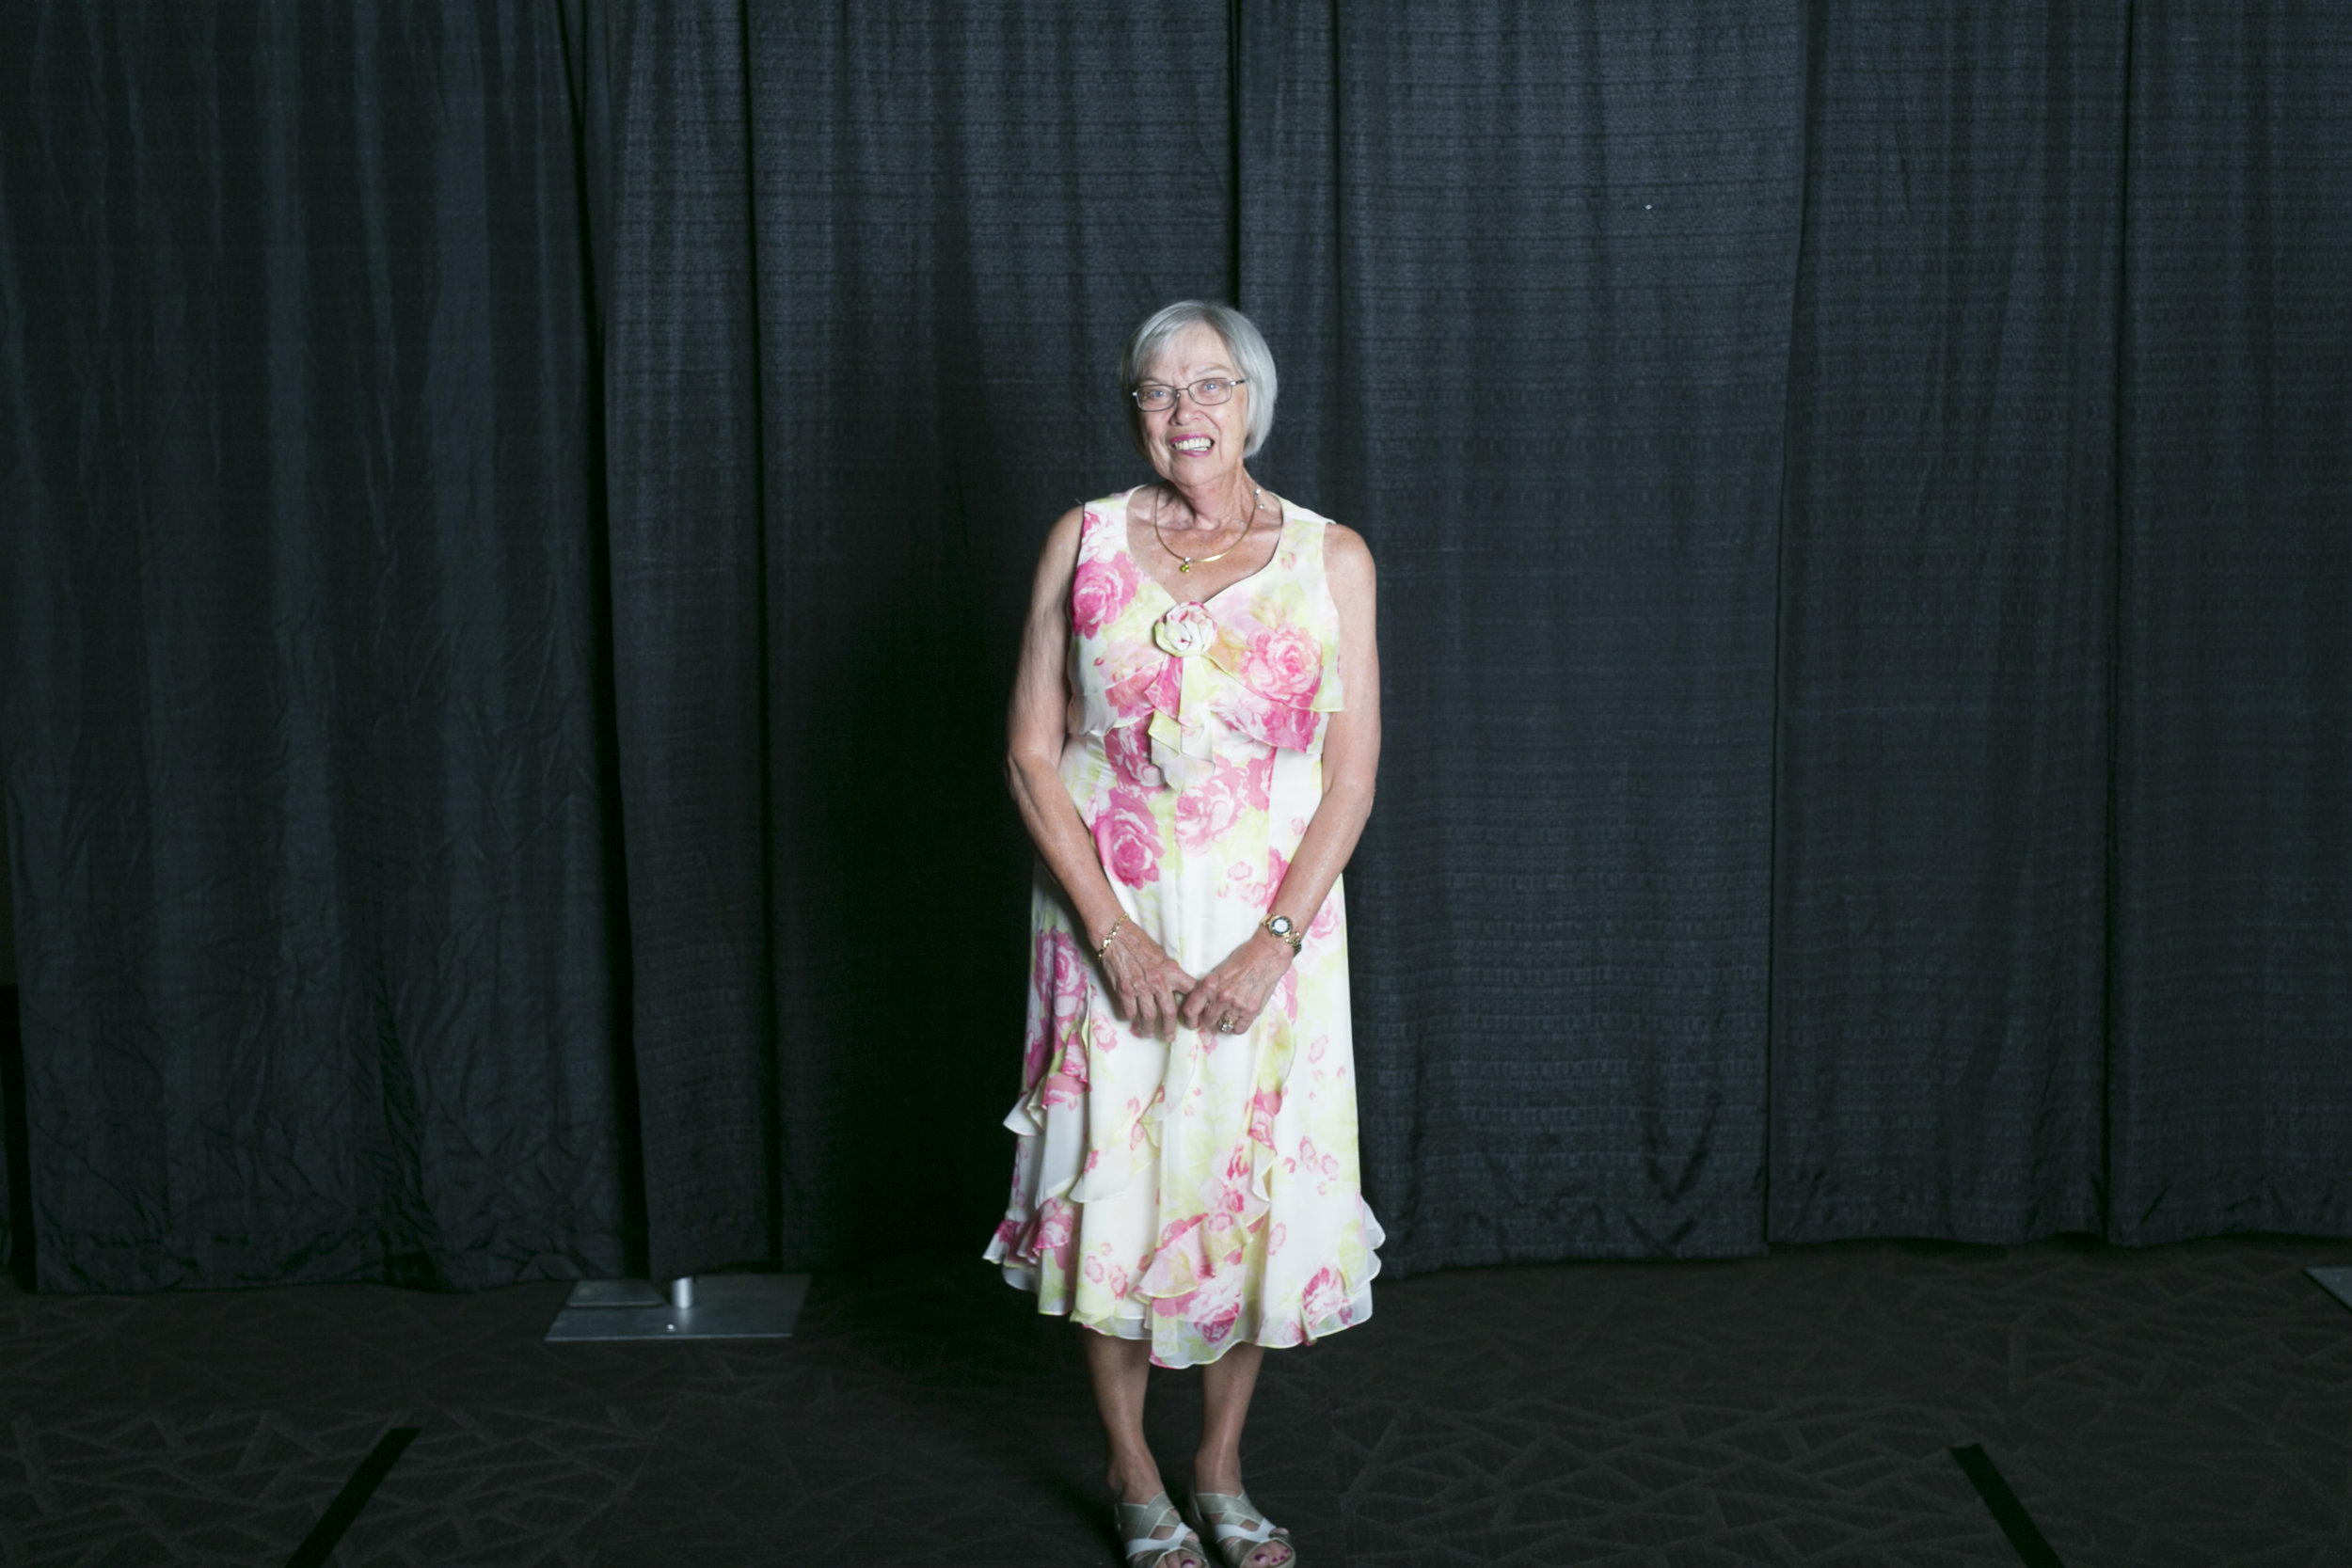 wedding photo booth-50.jpg